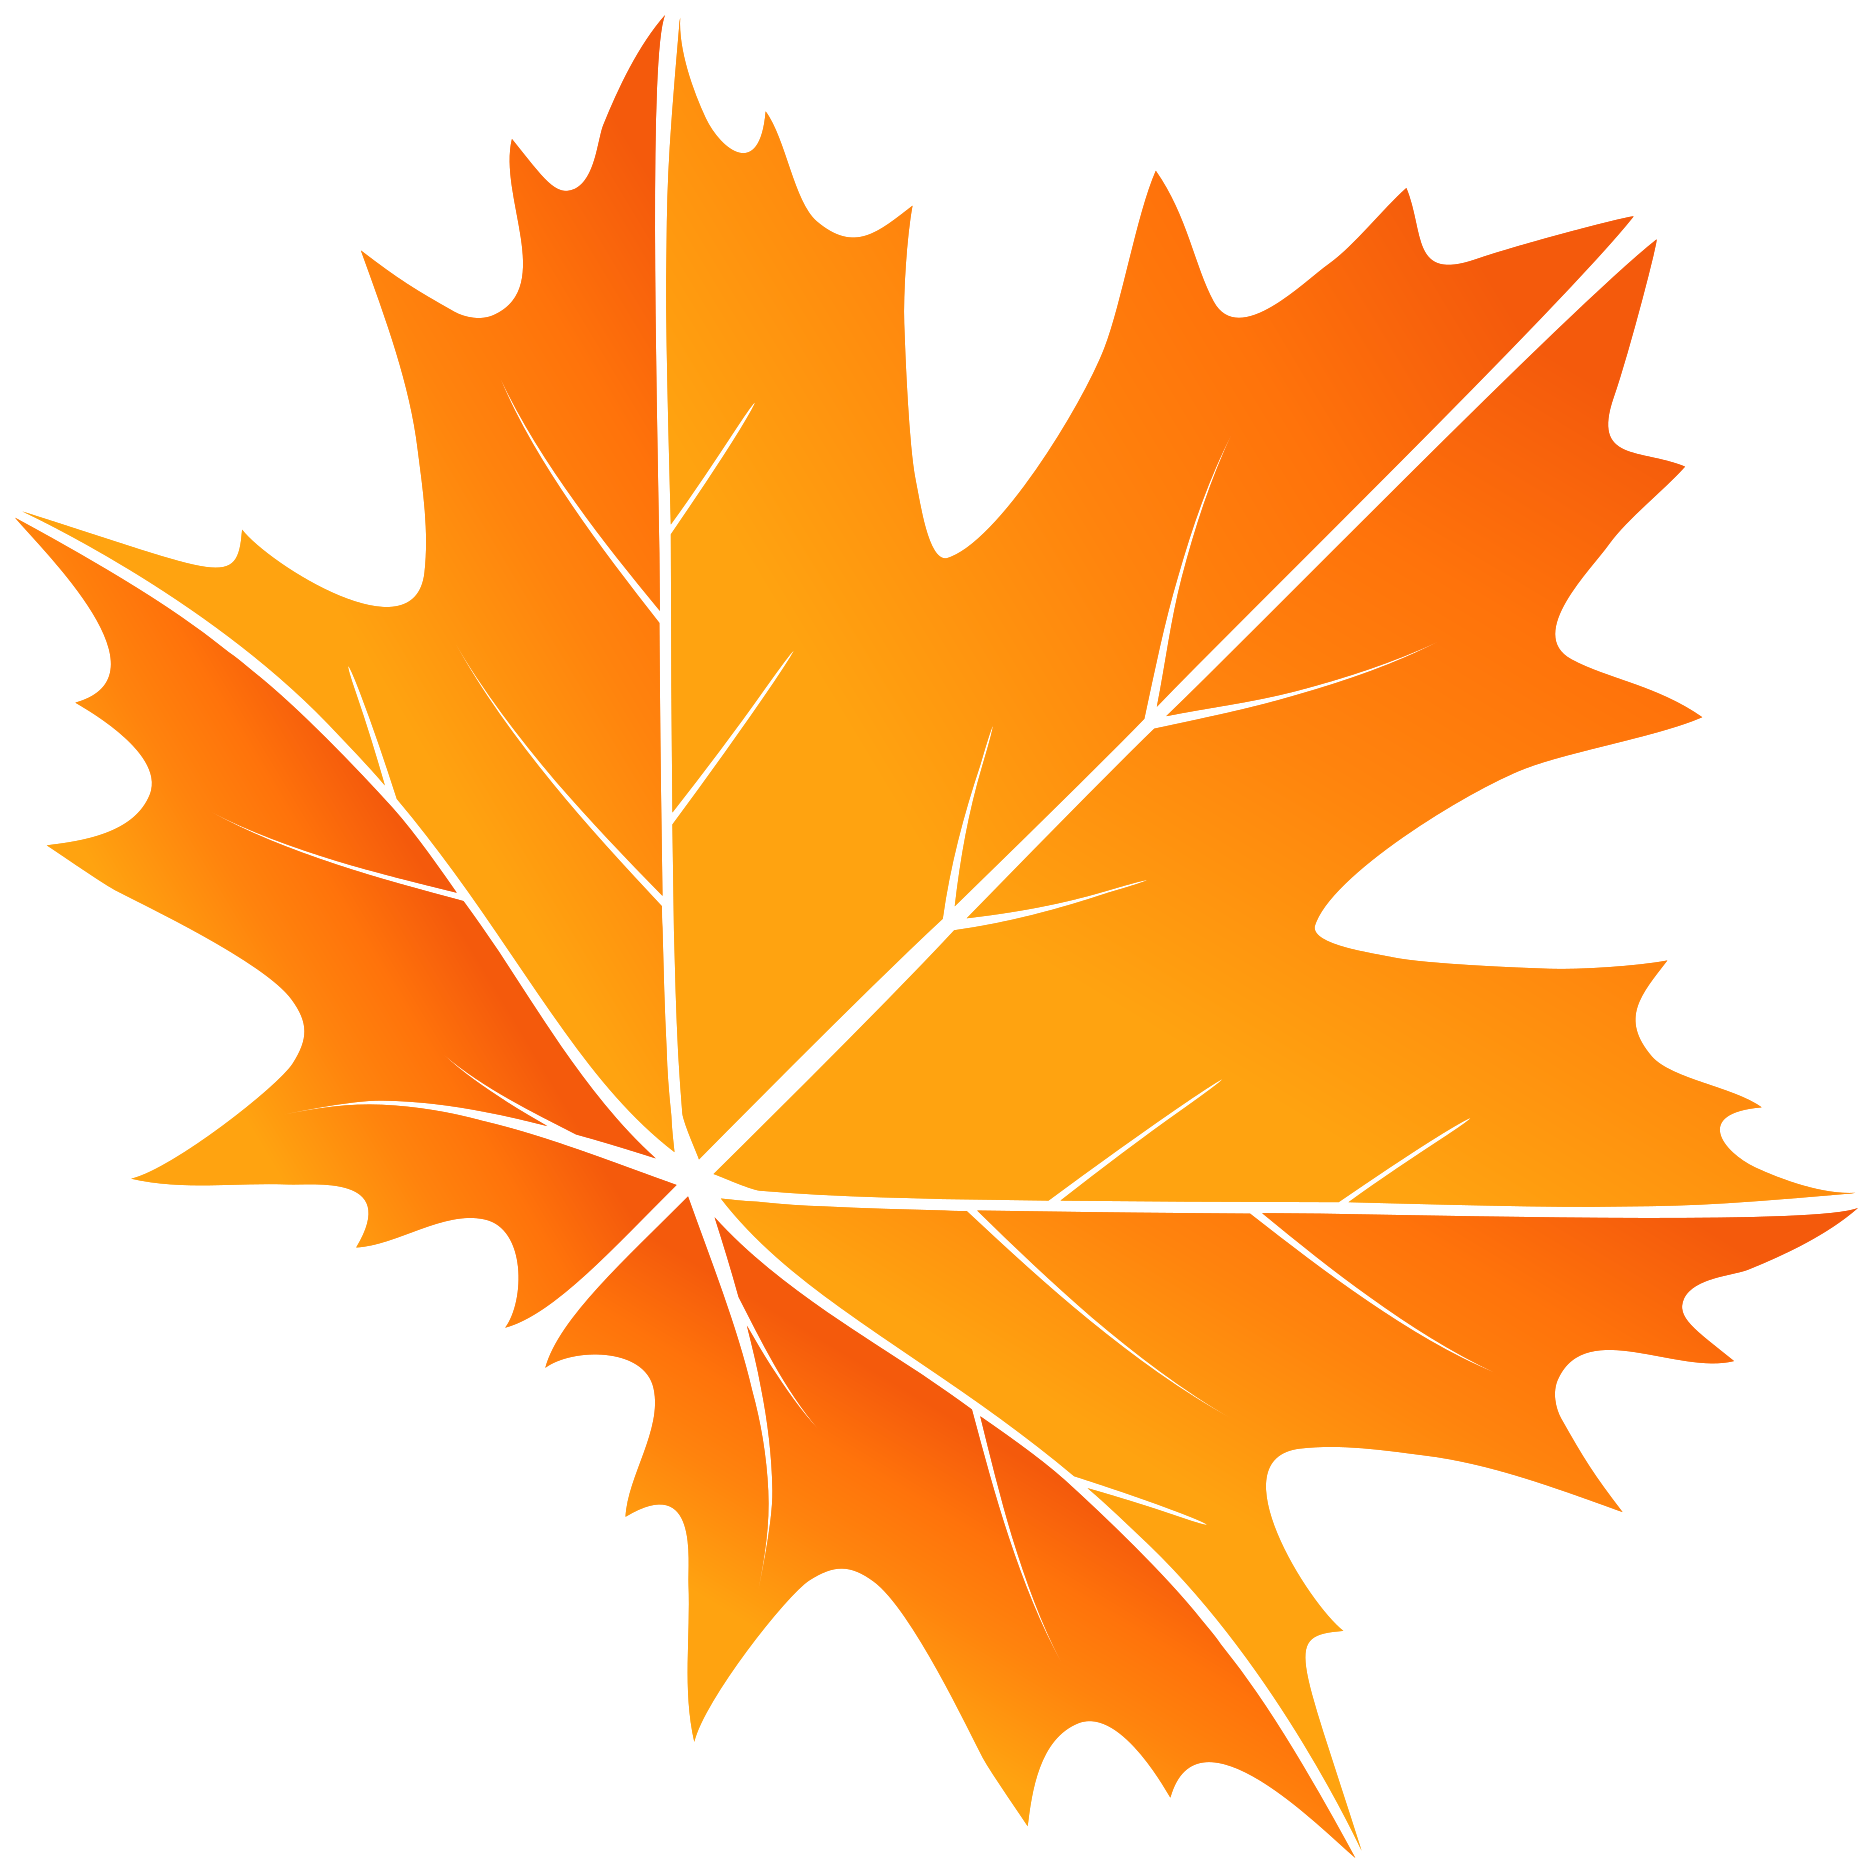 Free Maple Leaf Png With Transparent Background Download free leaf png images. maple leaf png with transparent background